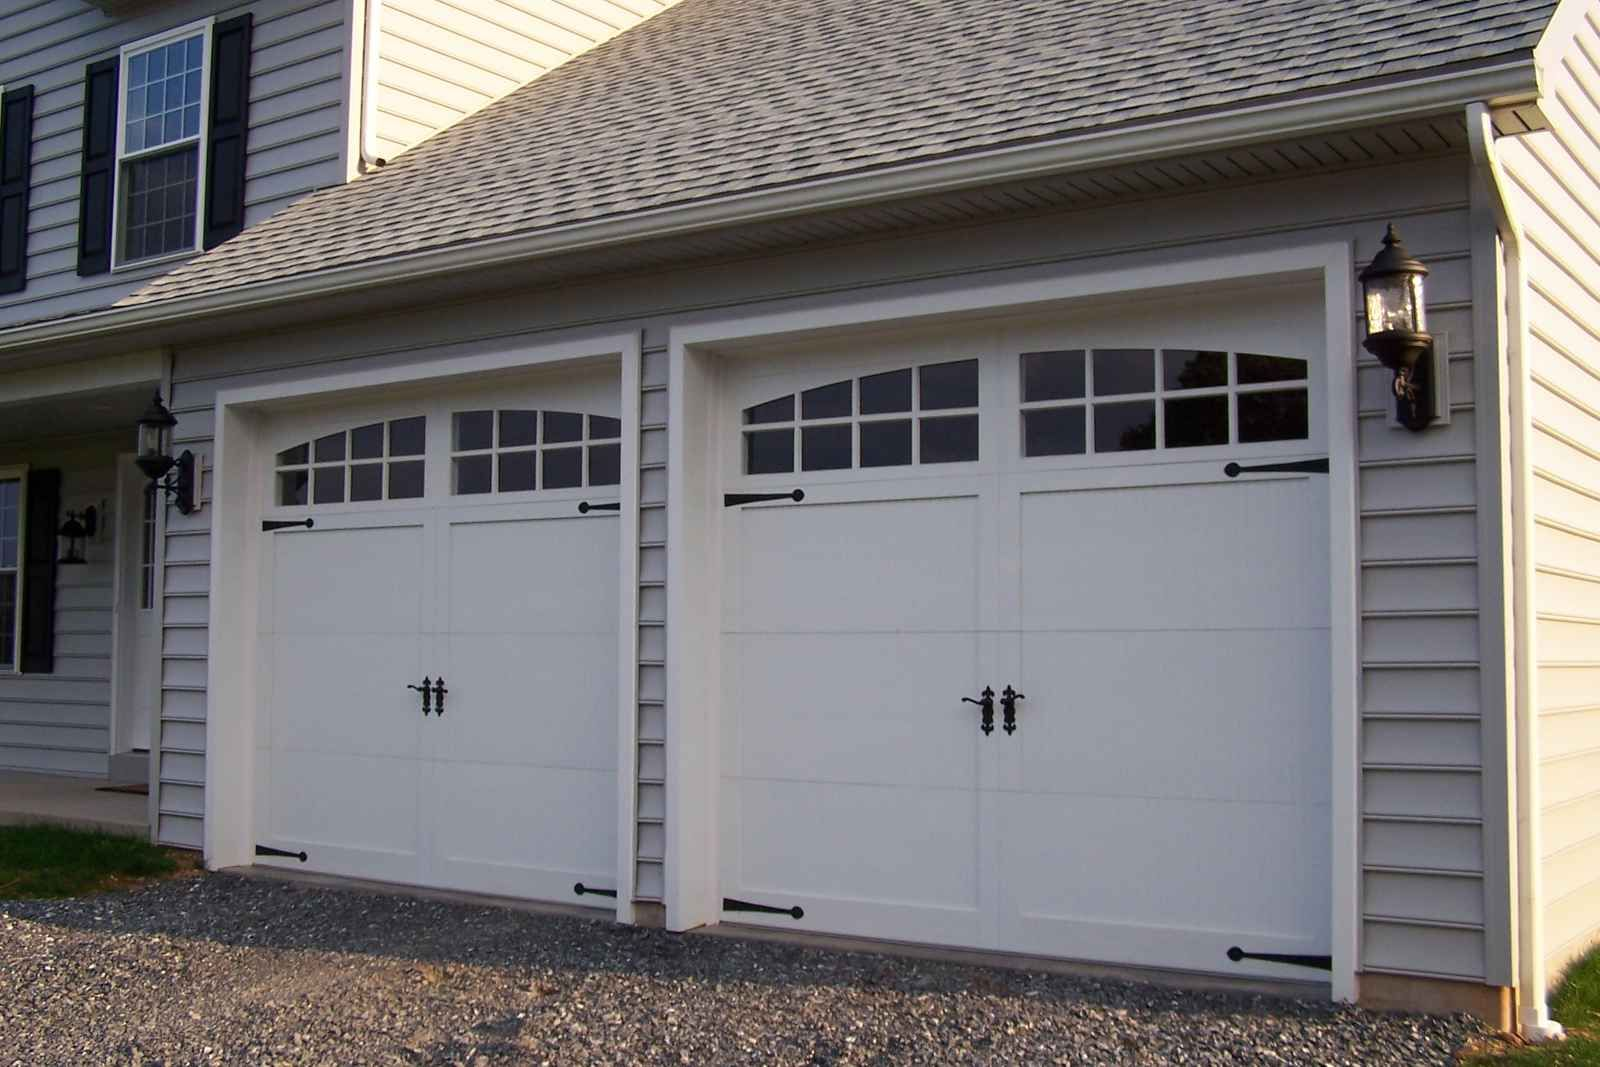 1067 #AA7F21  Steel Carriage House Garage Doors On Pinterest Steel Garage Arches And save image Ab Garage Doors 36471600